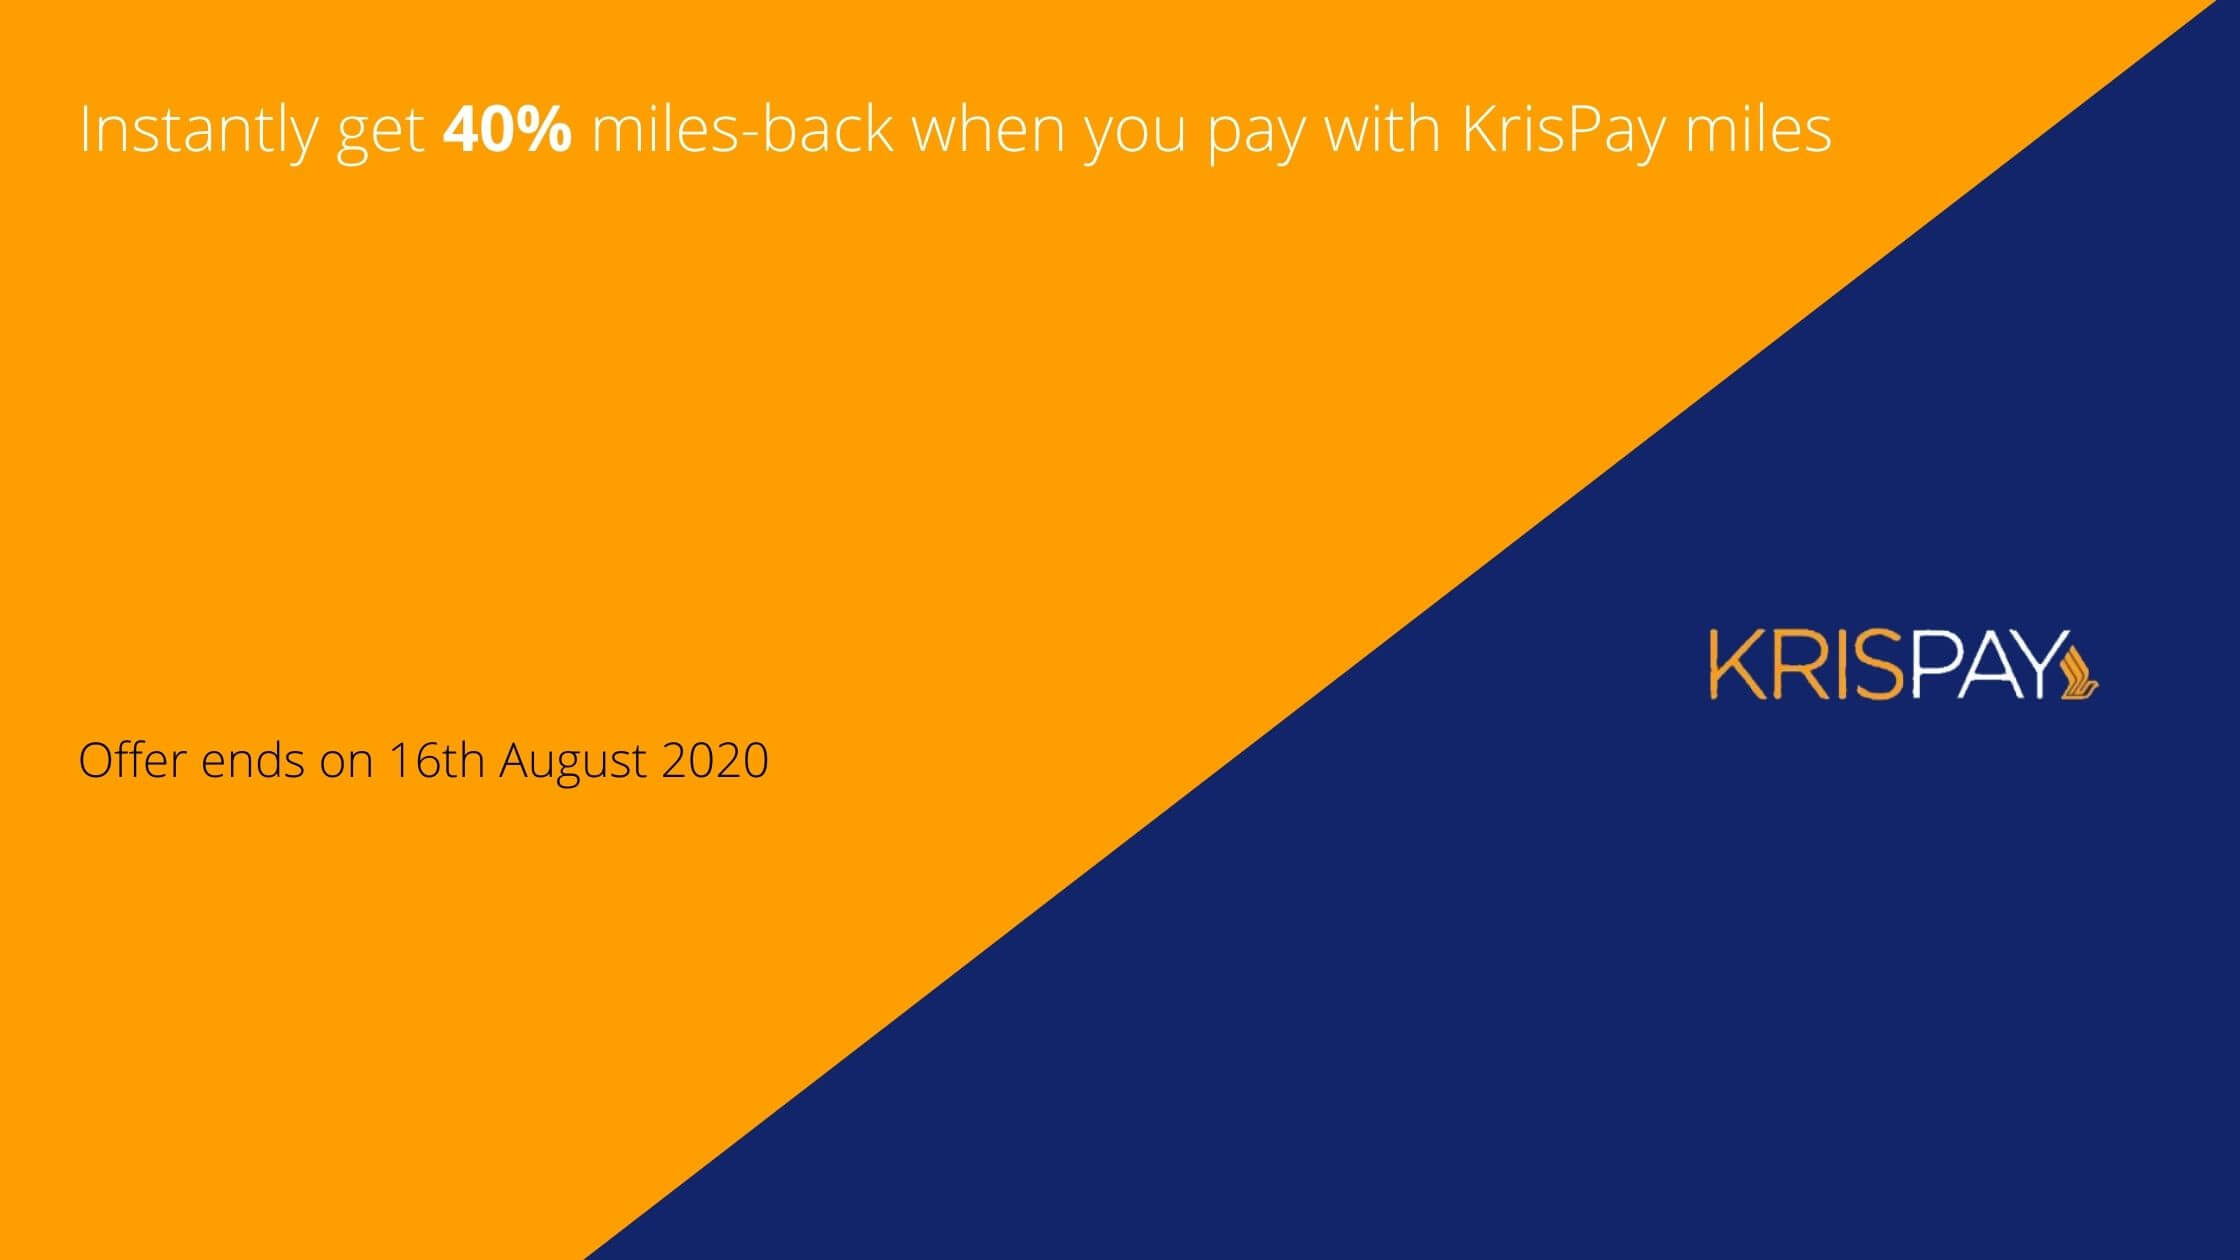 We are celebrating KrisPay's 2nd Birthday!